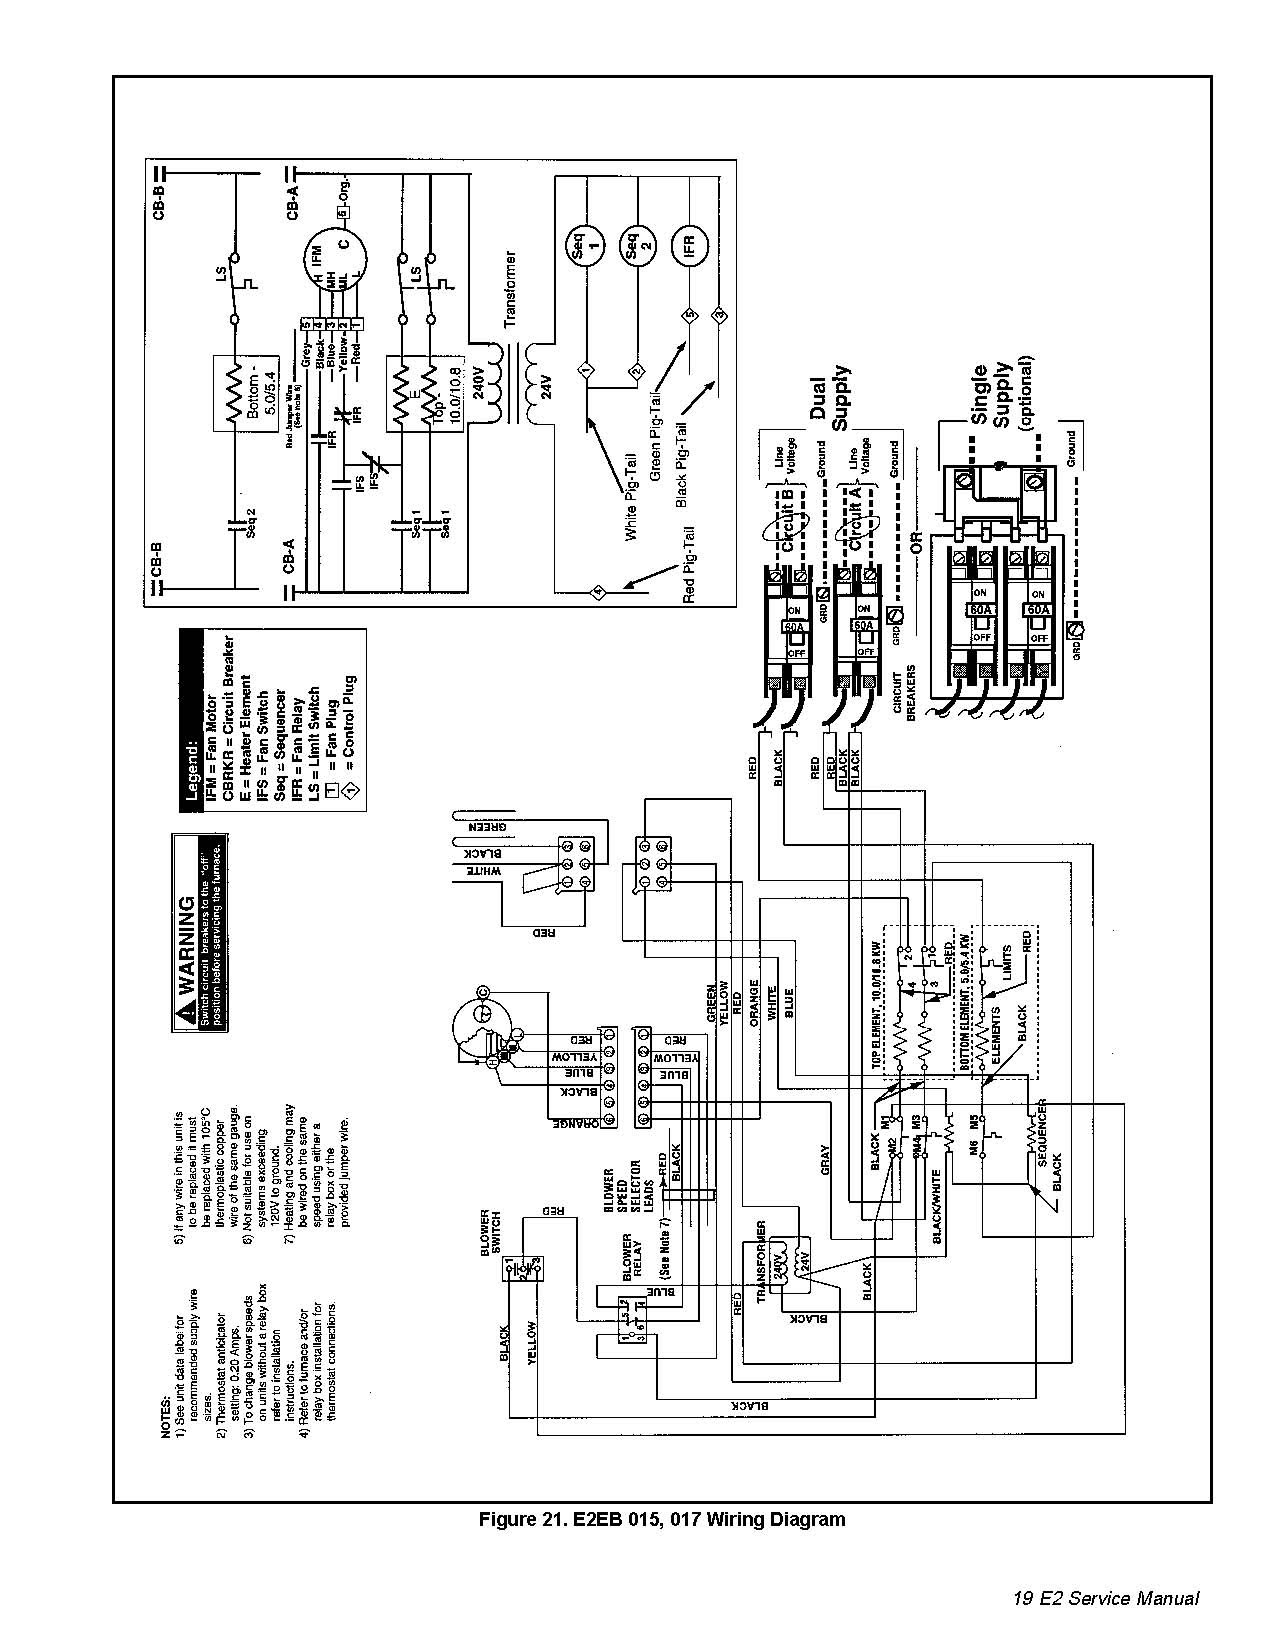 miller furnace wiring diagram detailed wiring diagrammiller furnace diagram wiring diagram todays miller furnace relay gallery of miller electric furnace wiring diagram